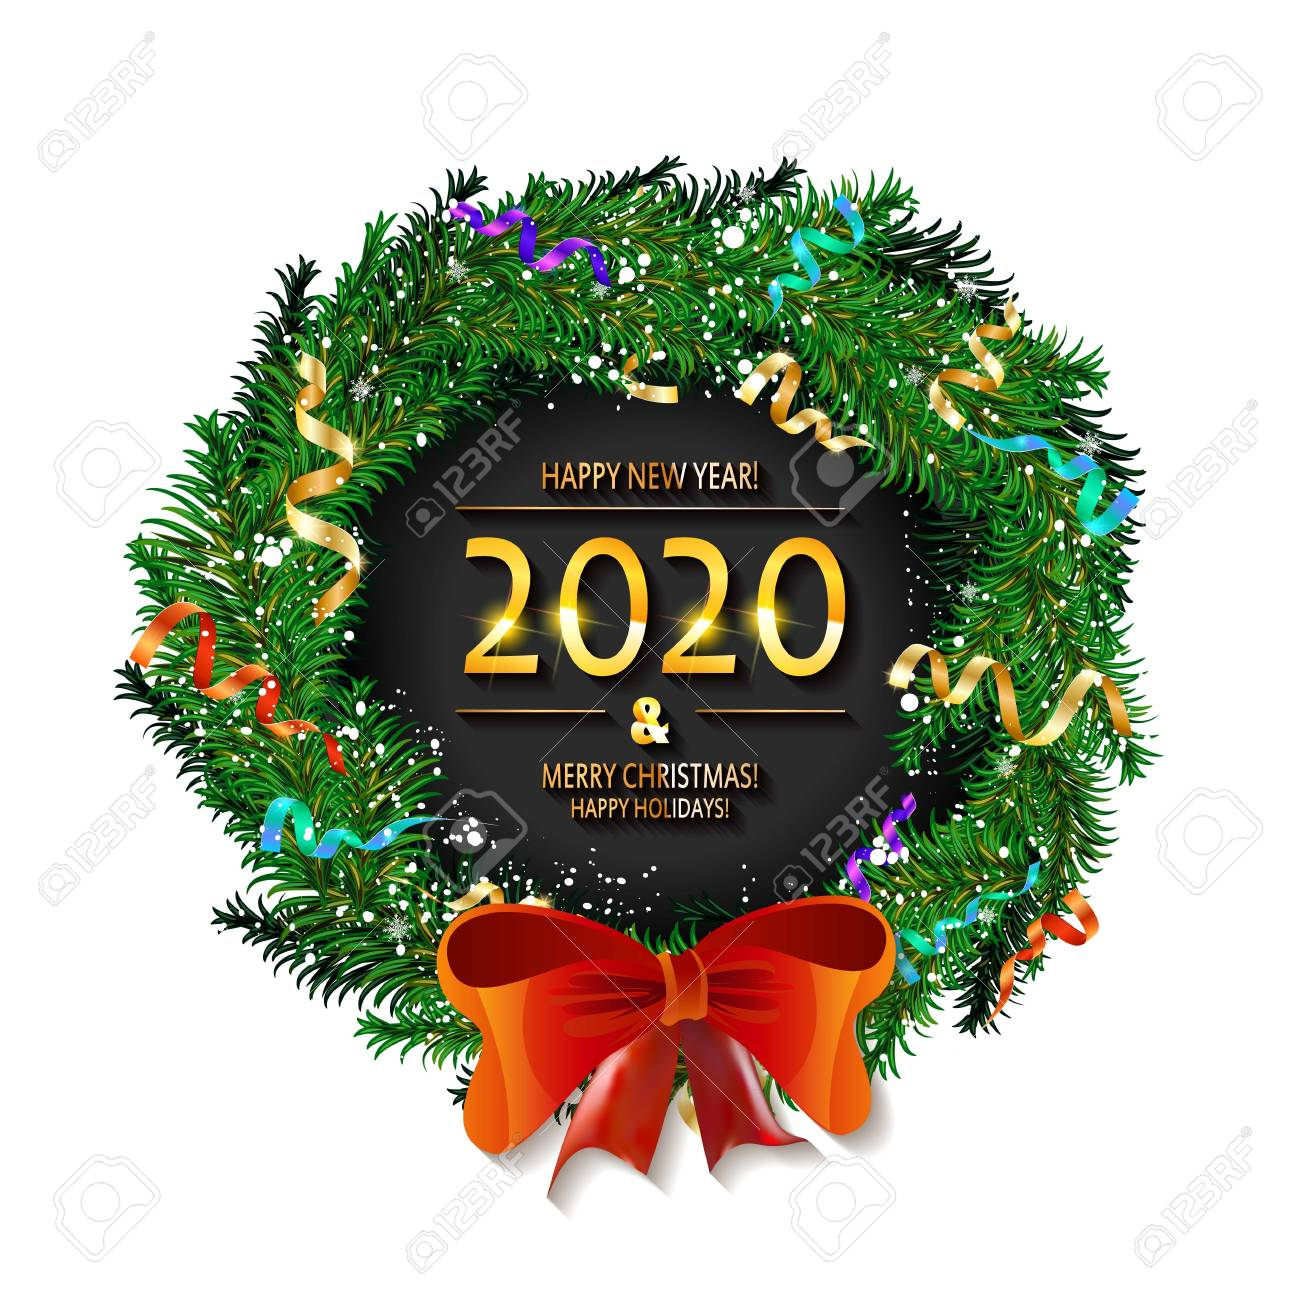 Merry Christmas Images 2020.Merry Christmas And Happy New Year 2020 Background Christmas